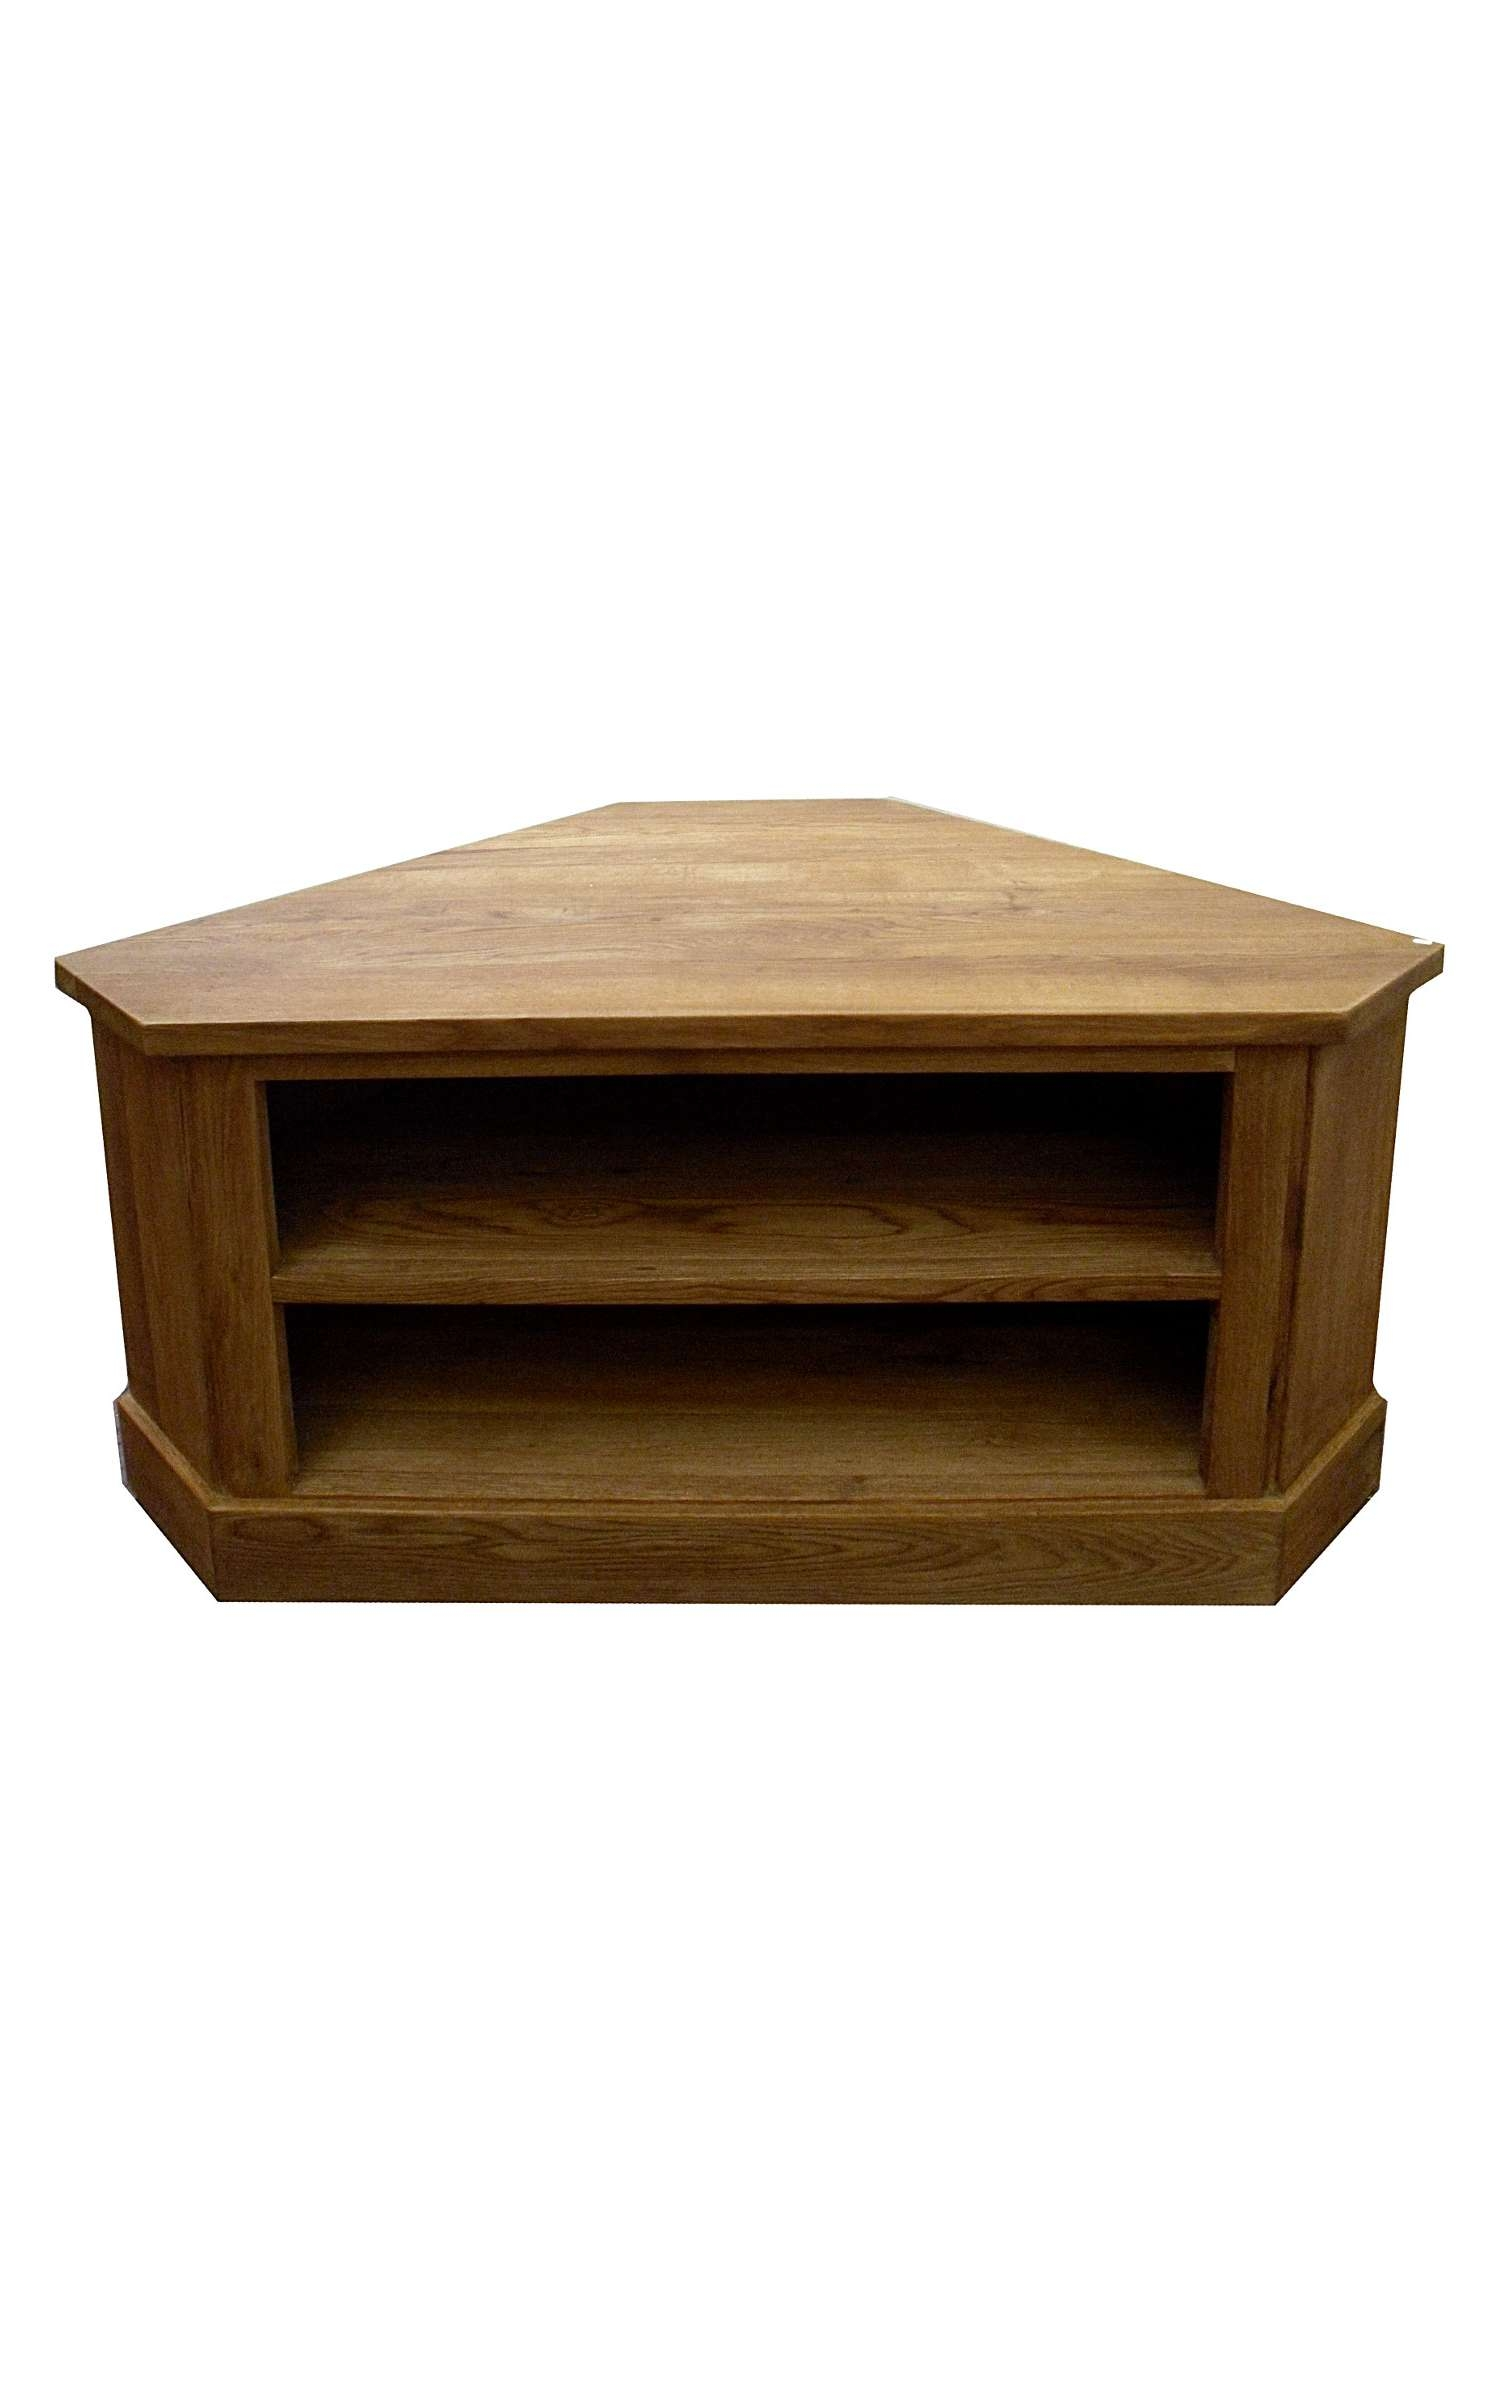 Small Wooden Corner Tv Stand Console Cabinet With Fireplace And Inside Small Corner Tv Stands (View 12 of 20)